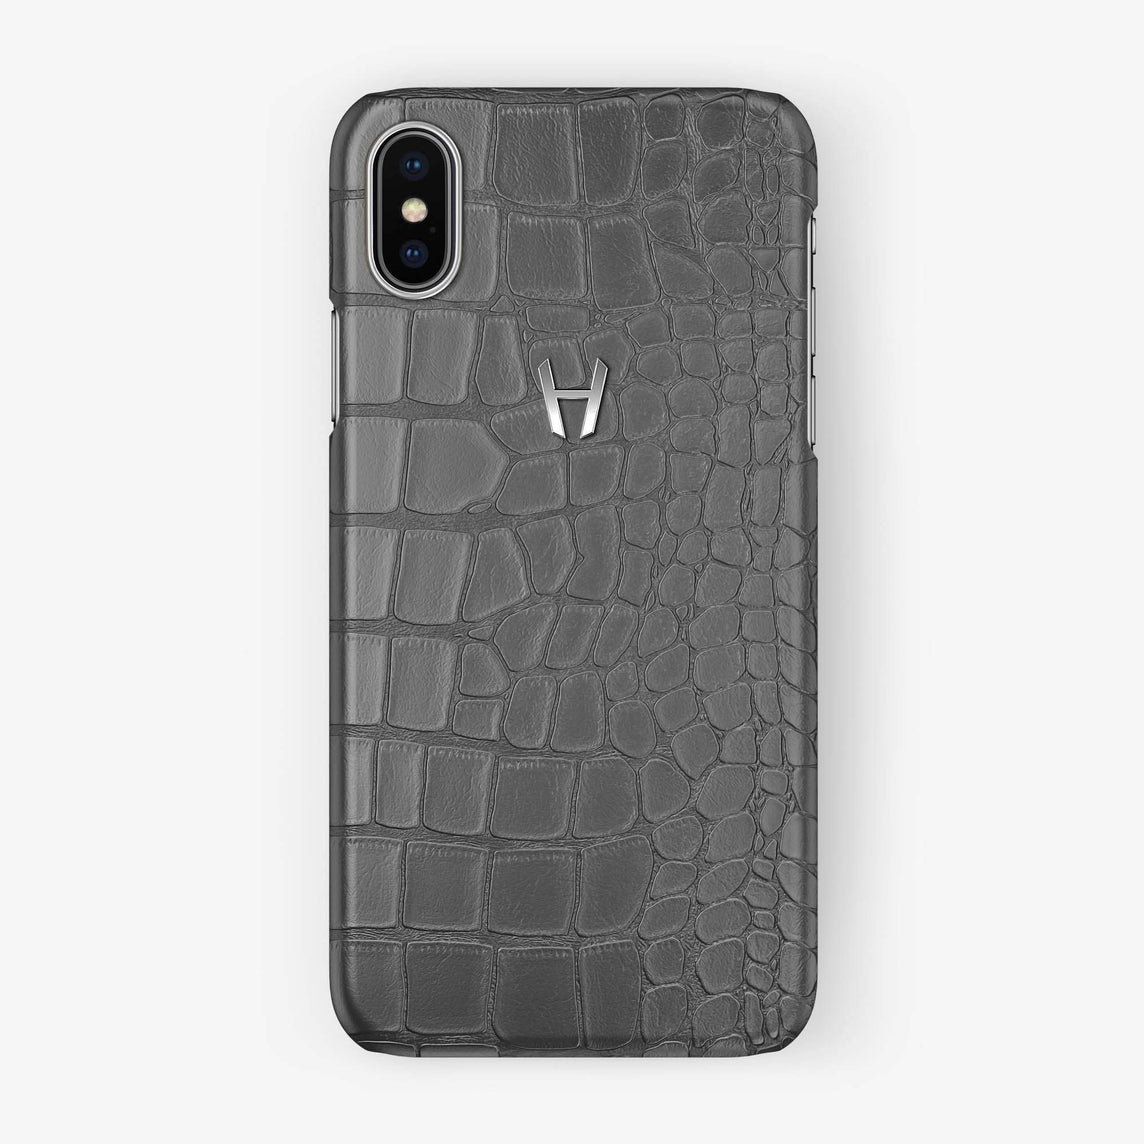 Alligator [iPhone Case] [model:iphone-xsmax-case] [colour:grey] [finishing:stainless-steel] - Hadoro